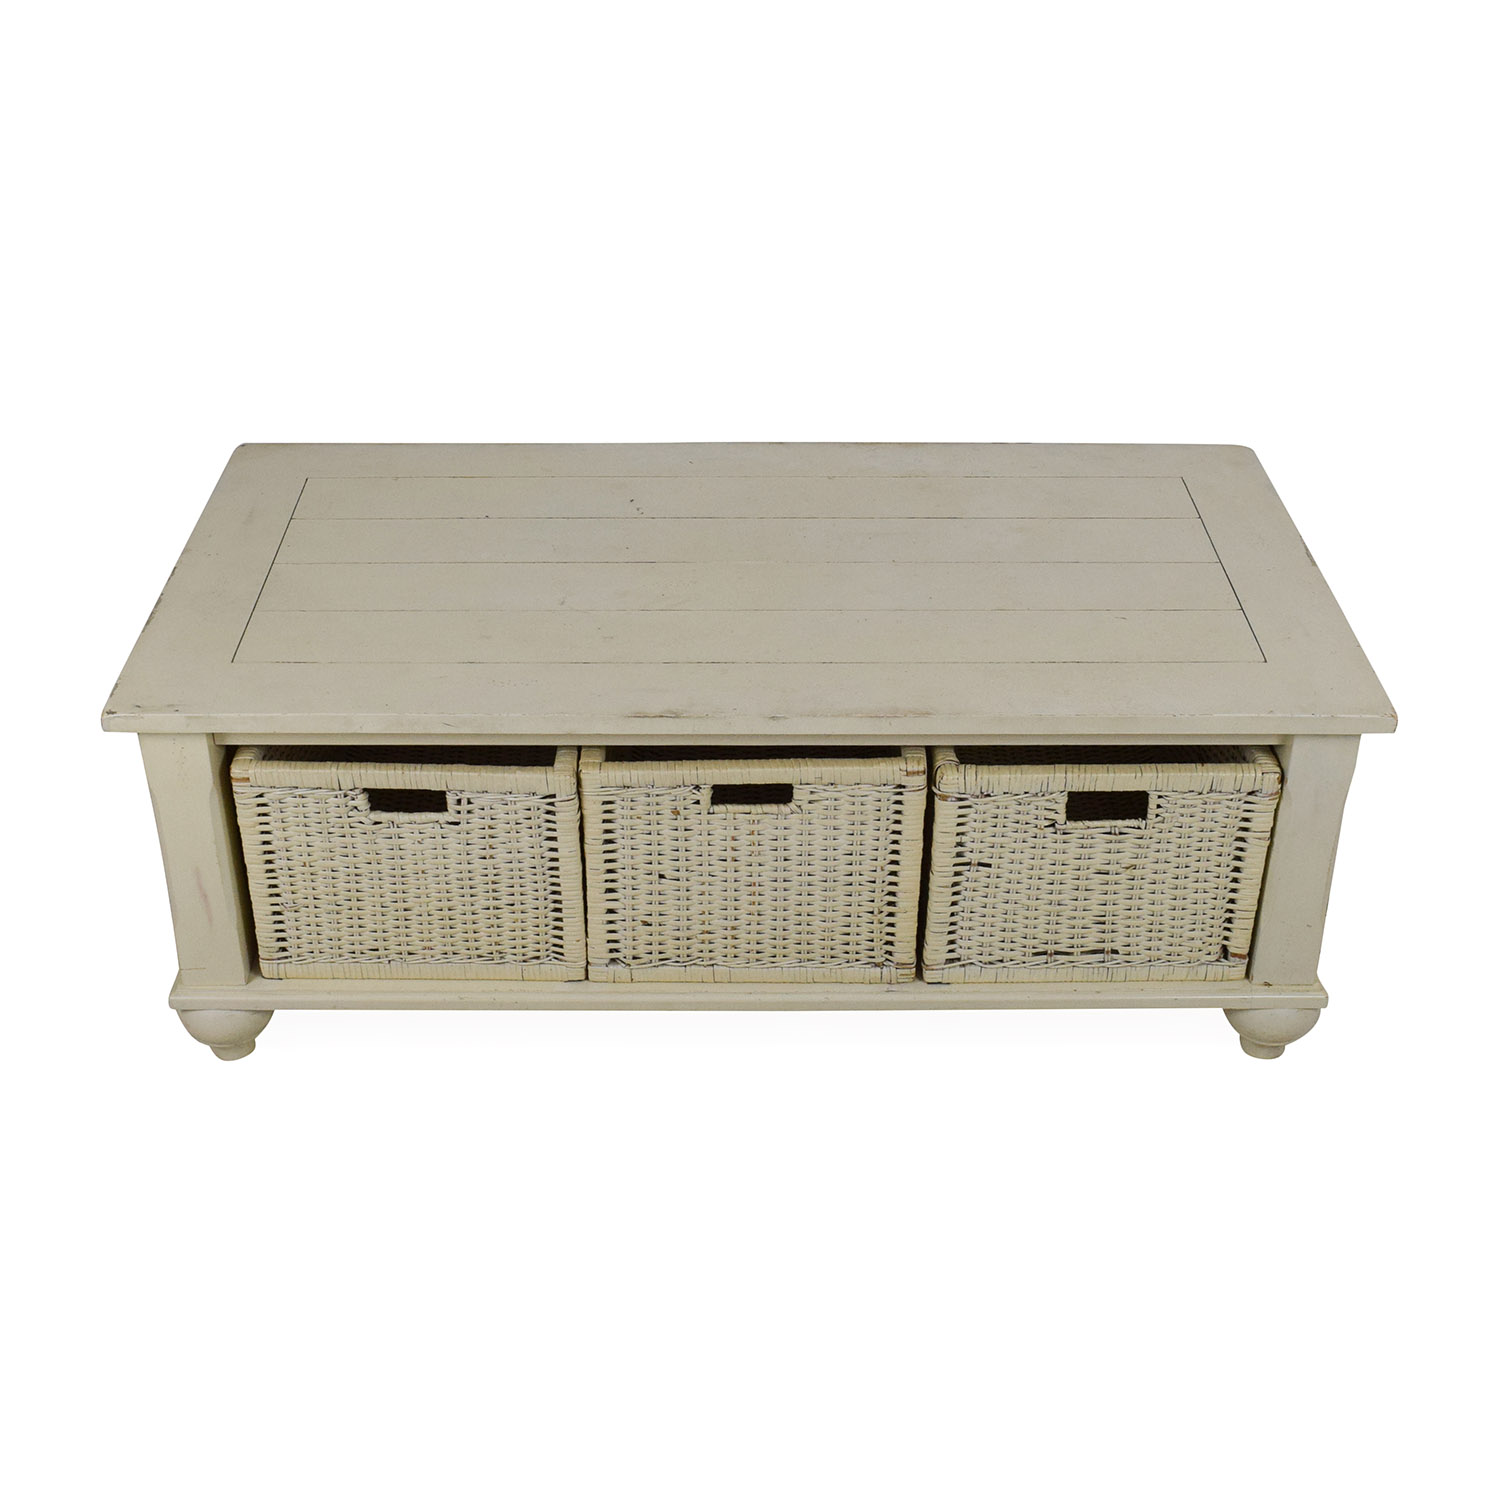 Klaussner Furniture Klaussner Furniture Treasures White Coffee Table dimensions